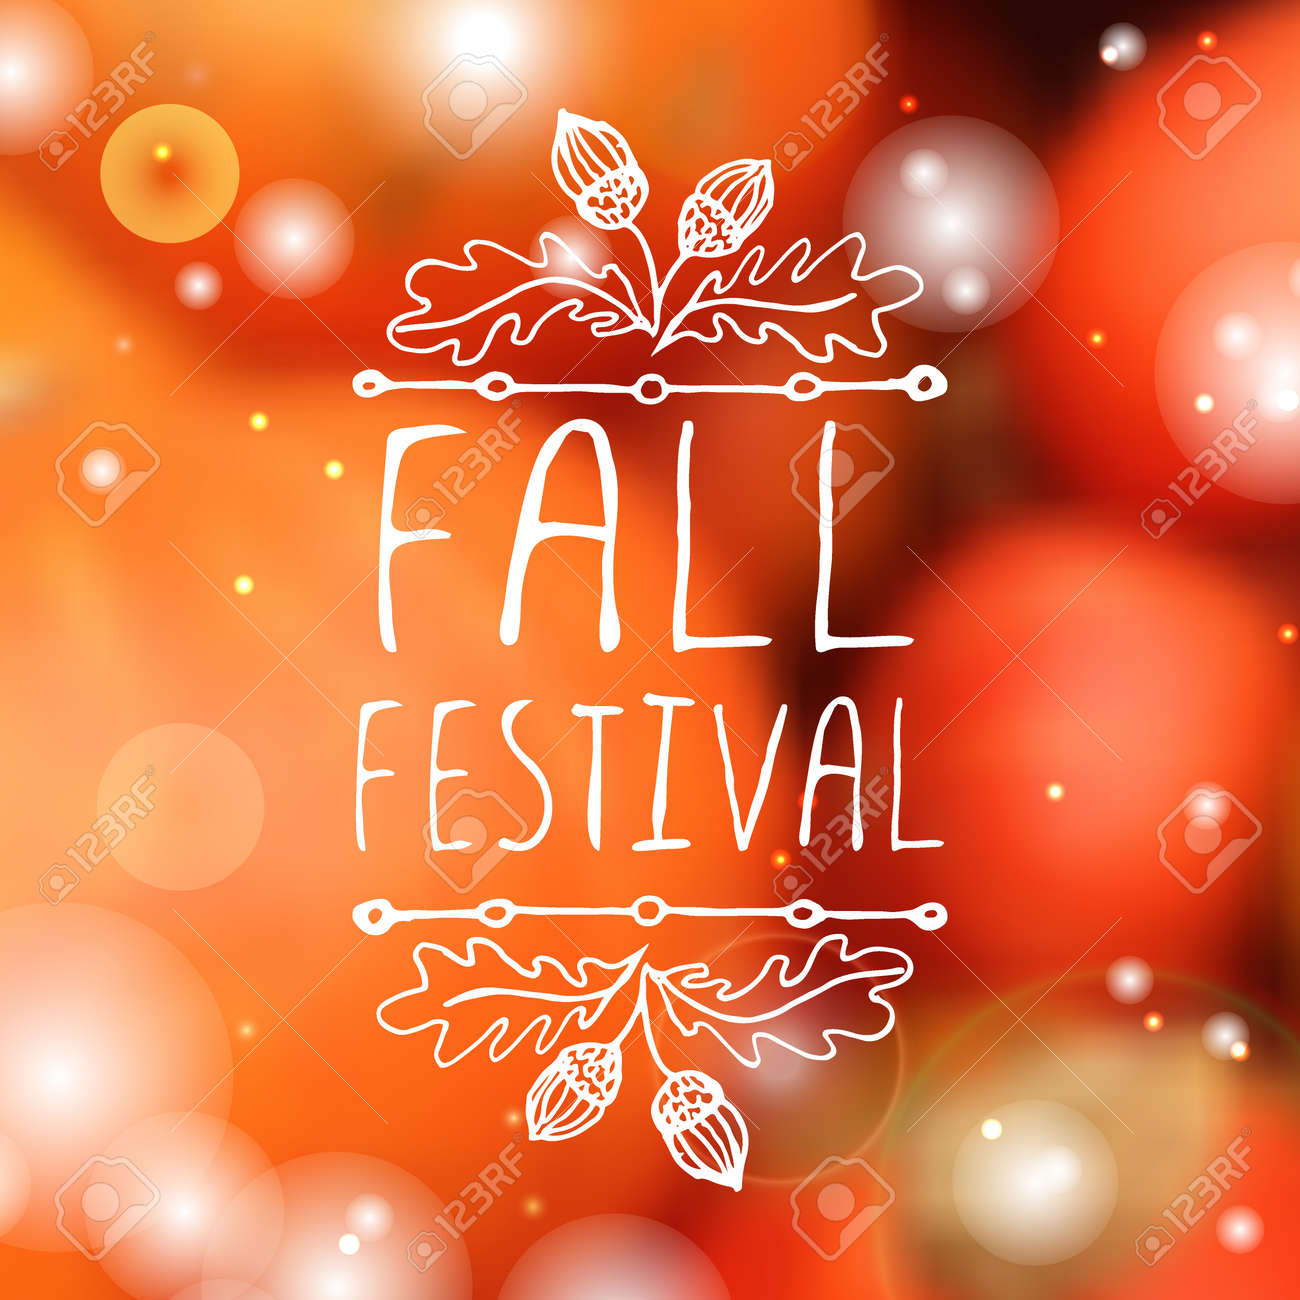 Fall festival. Hand-sketched typographic element with acorns on blurred background. - 46550810